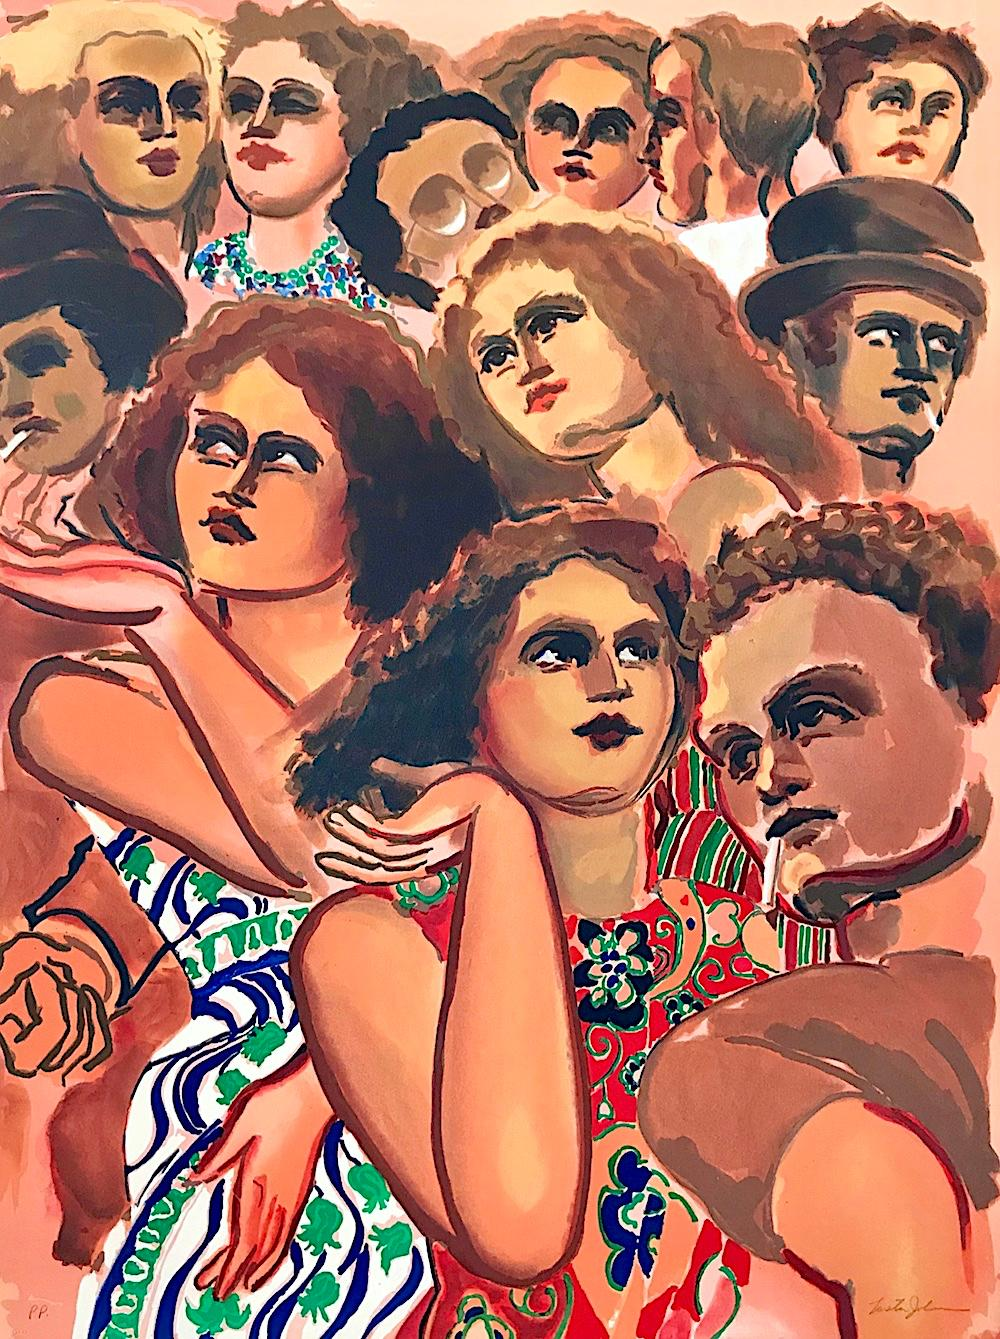 CITY GROUP Signed Lithograph, Crowd Portrait, Faces, Peach, Red, Blue, Brown